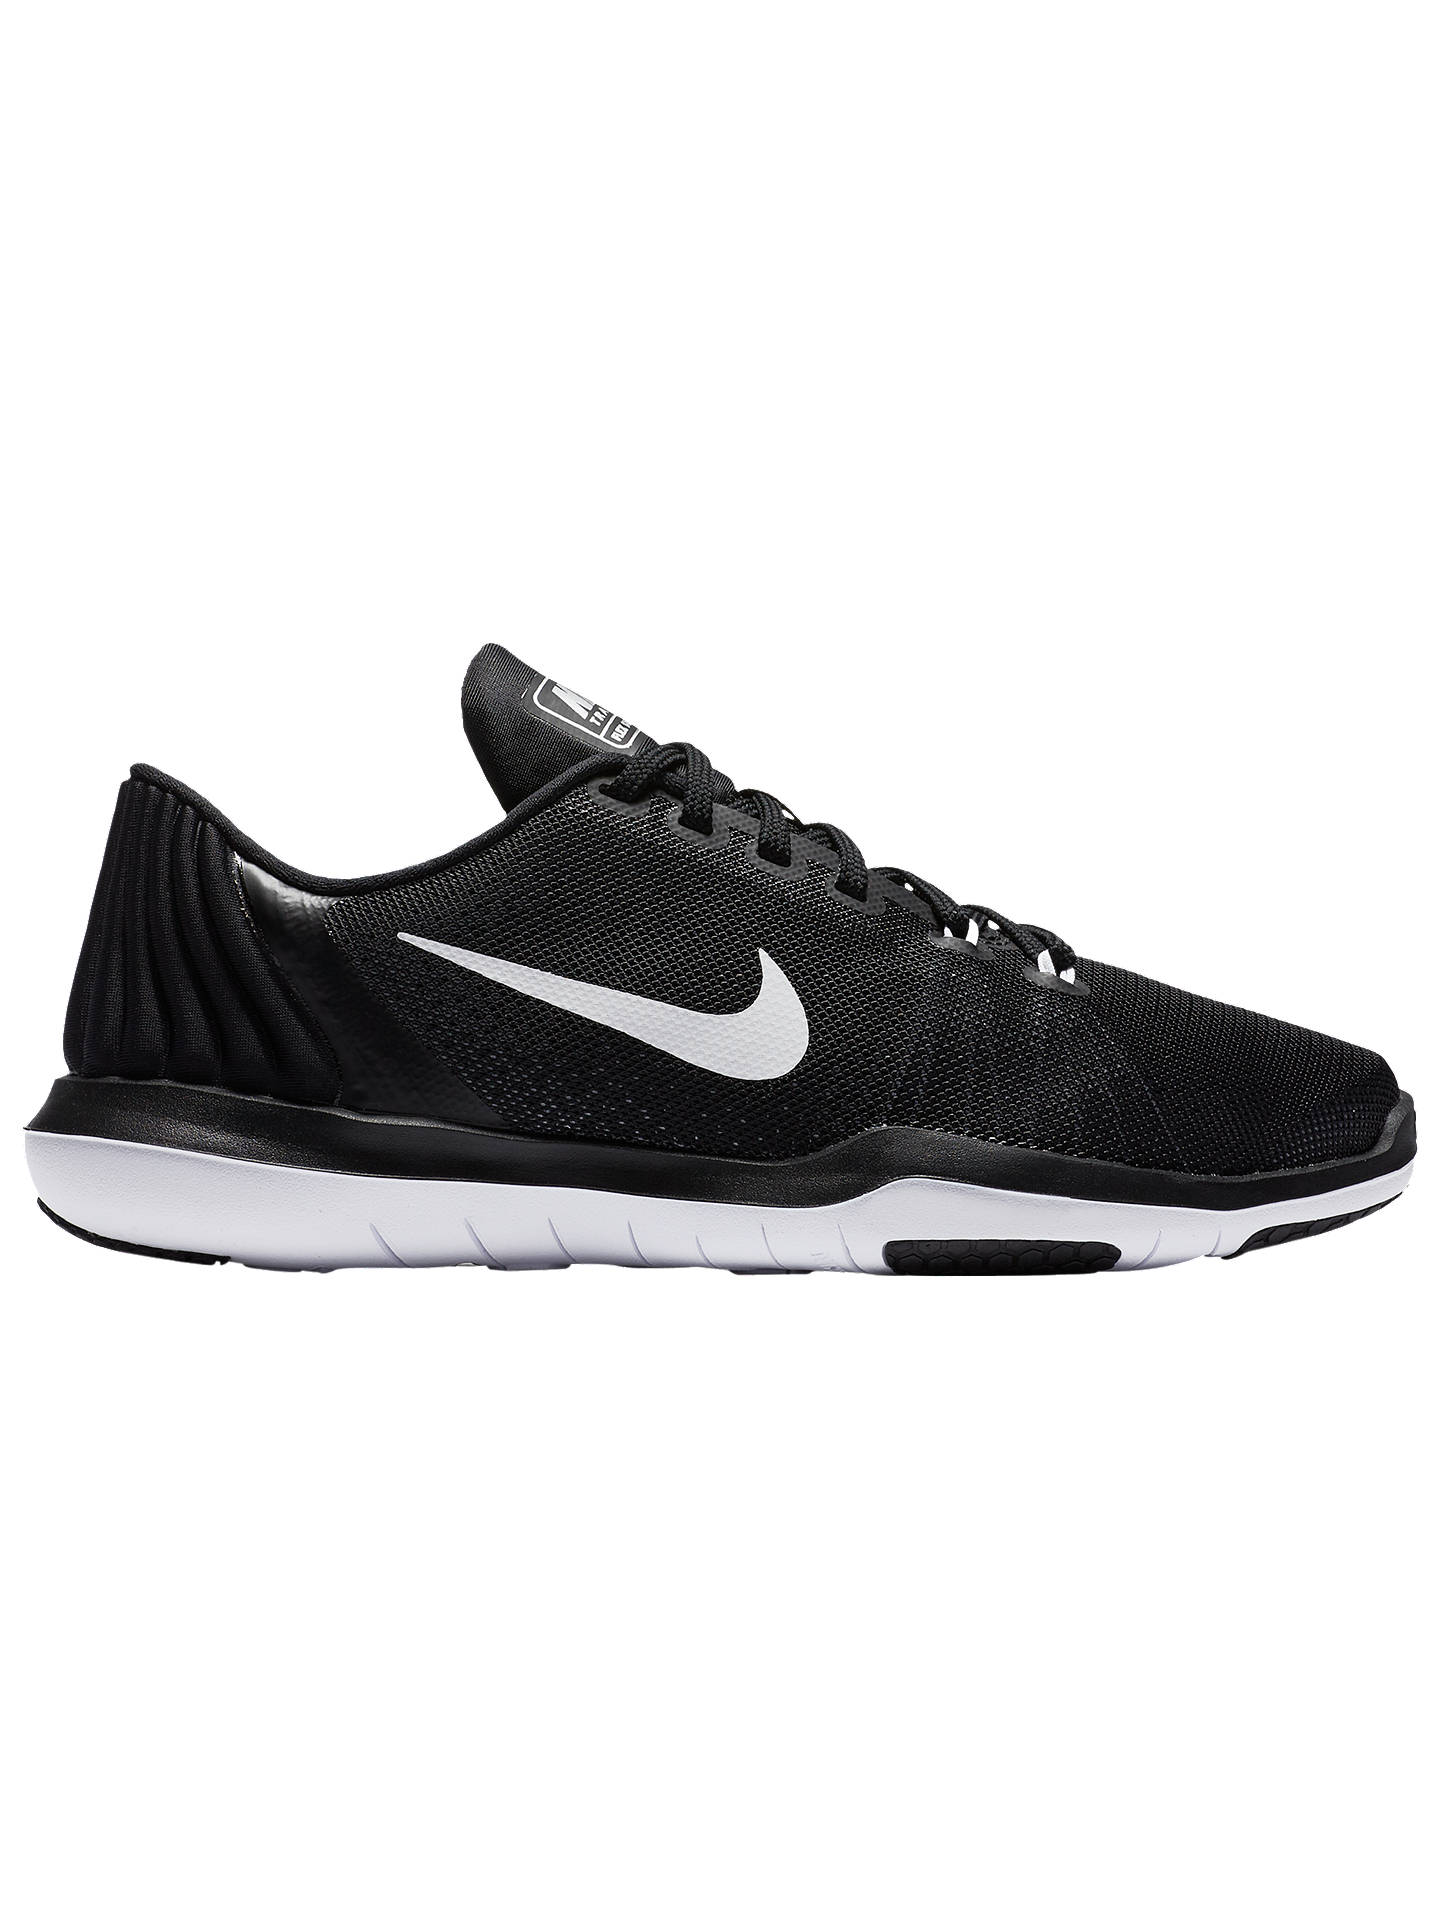 98883af925e15 Buy Nike Flex Supreme TR 5 Women s Cross Trainers